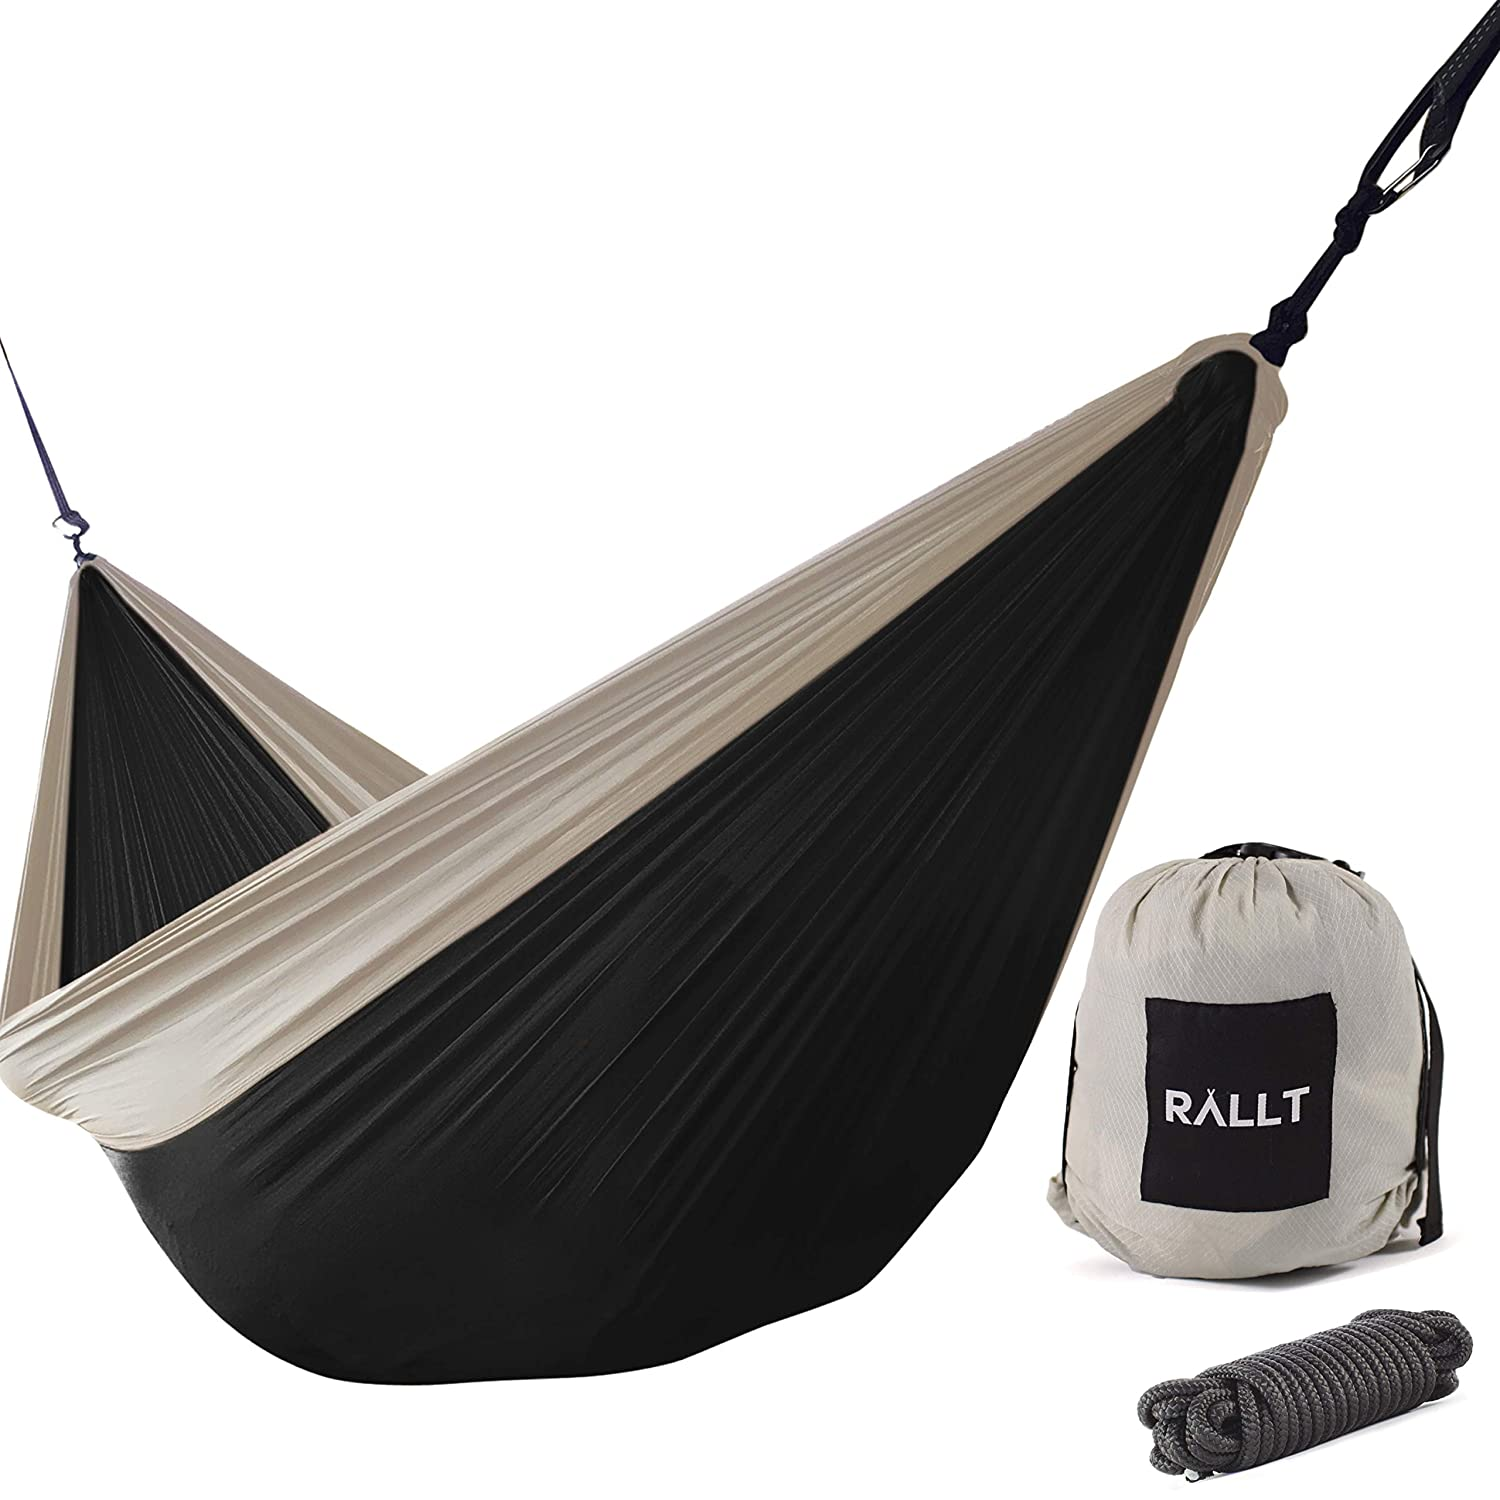 Backpacking and Survival Rallt Camping Hammock Gear for Hiking Lightweight Portable Durable Ripstop Parachute Nylon